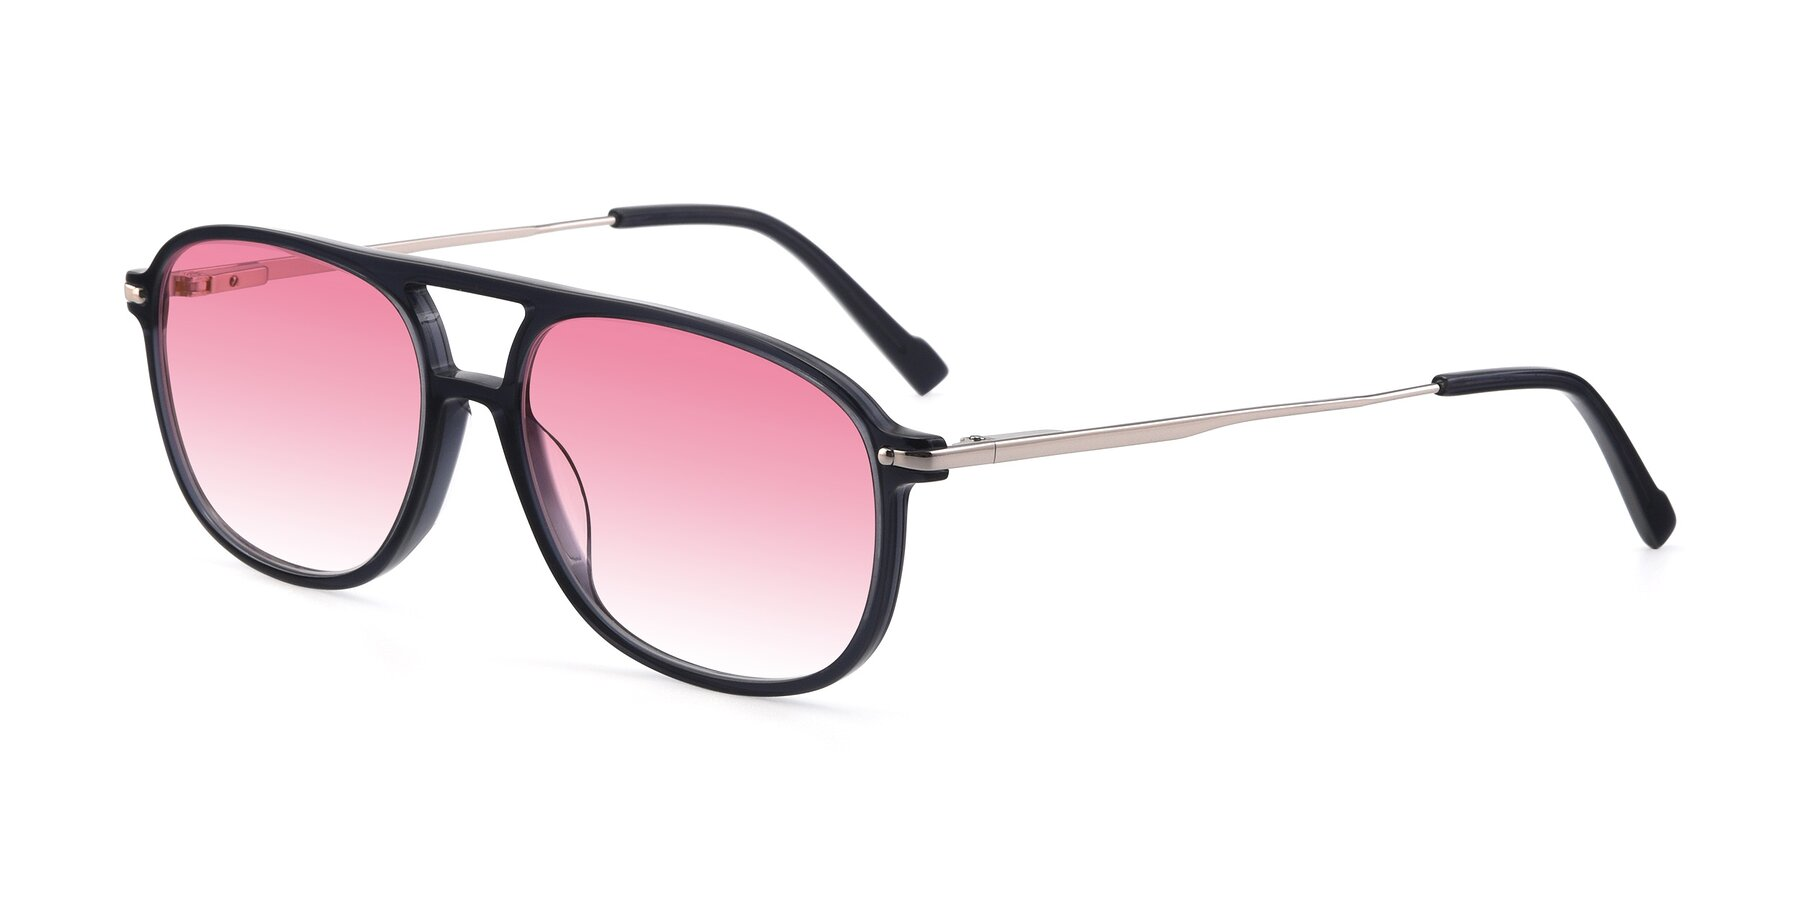 Angle of 17580 in Dark Bluish Gray with Pink Gradient Lenses